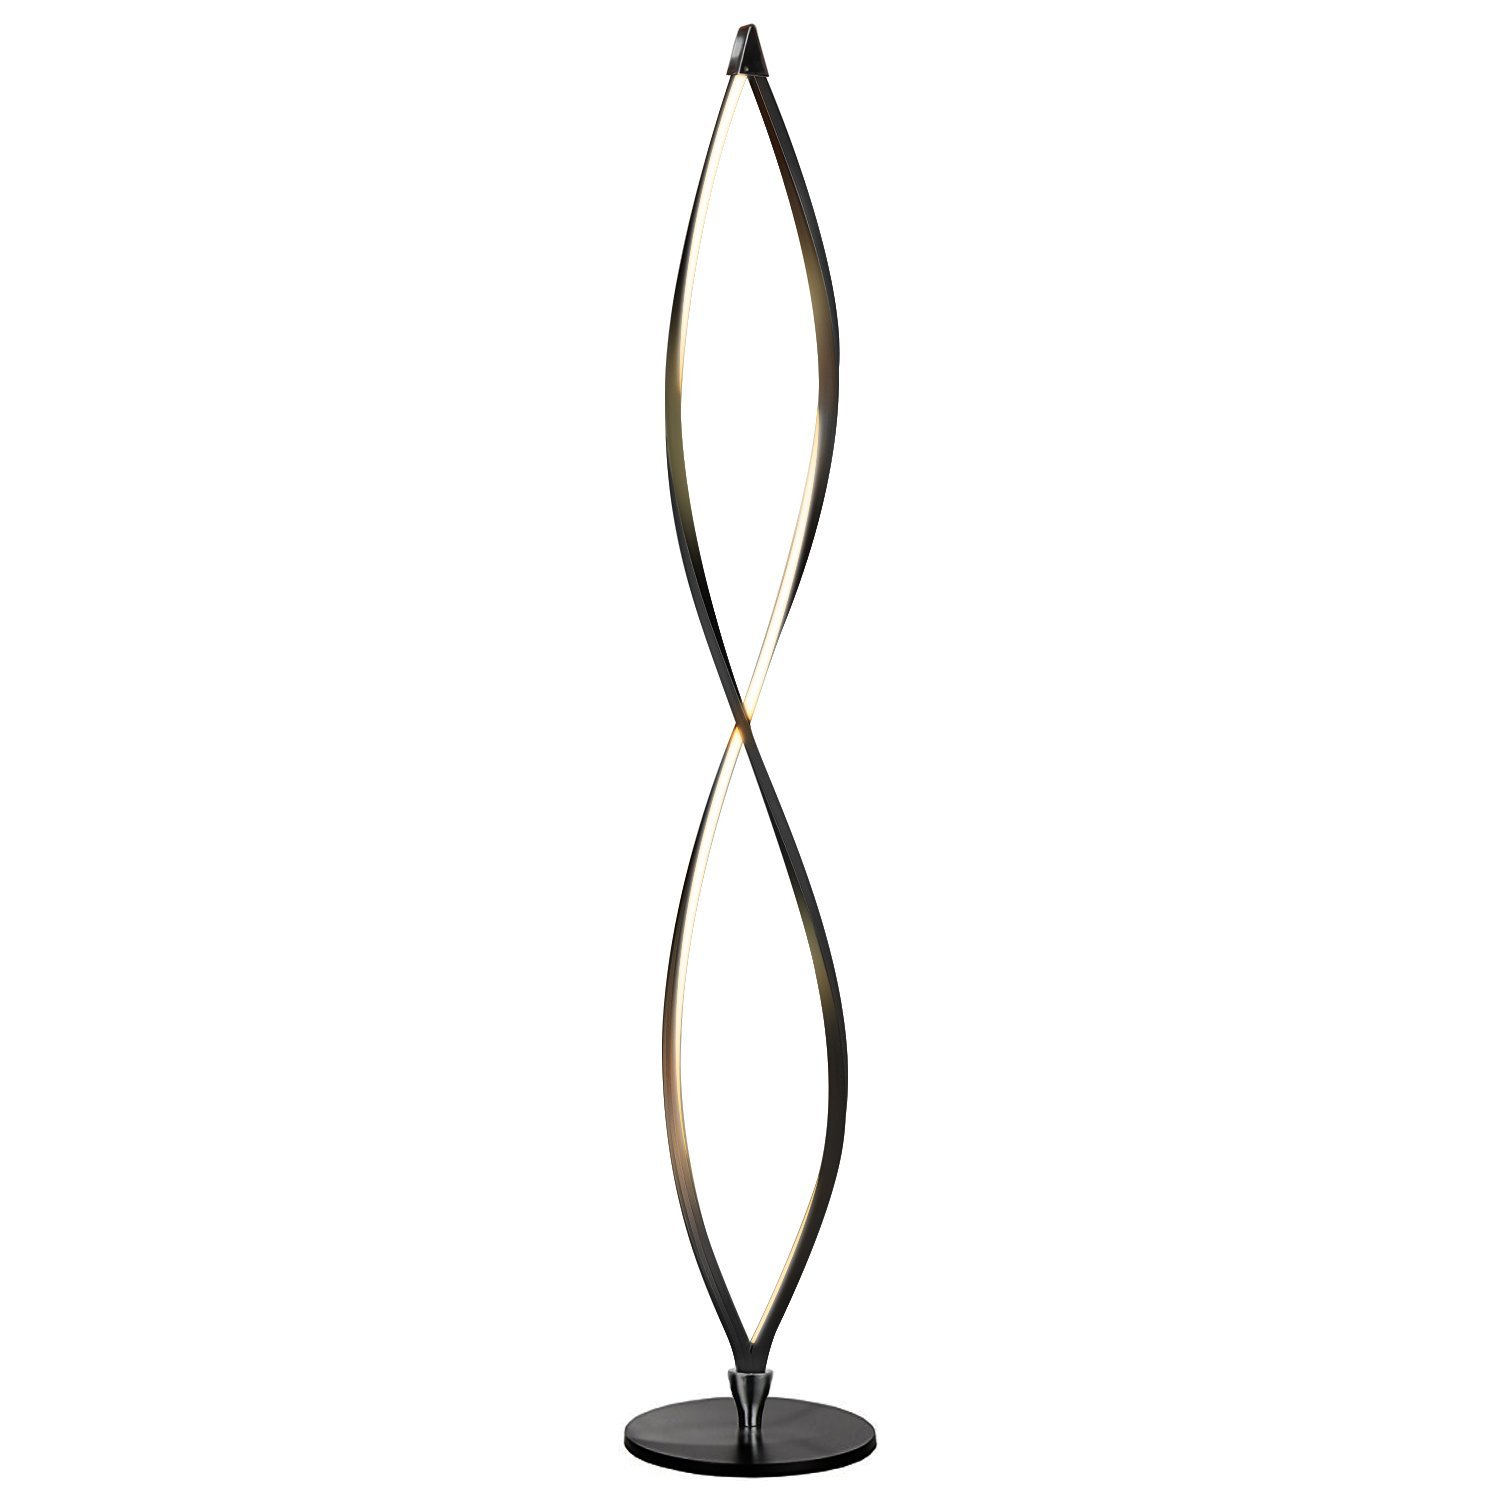 Top 10 Best Floor lamps in 2020